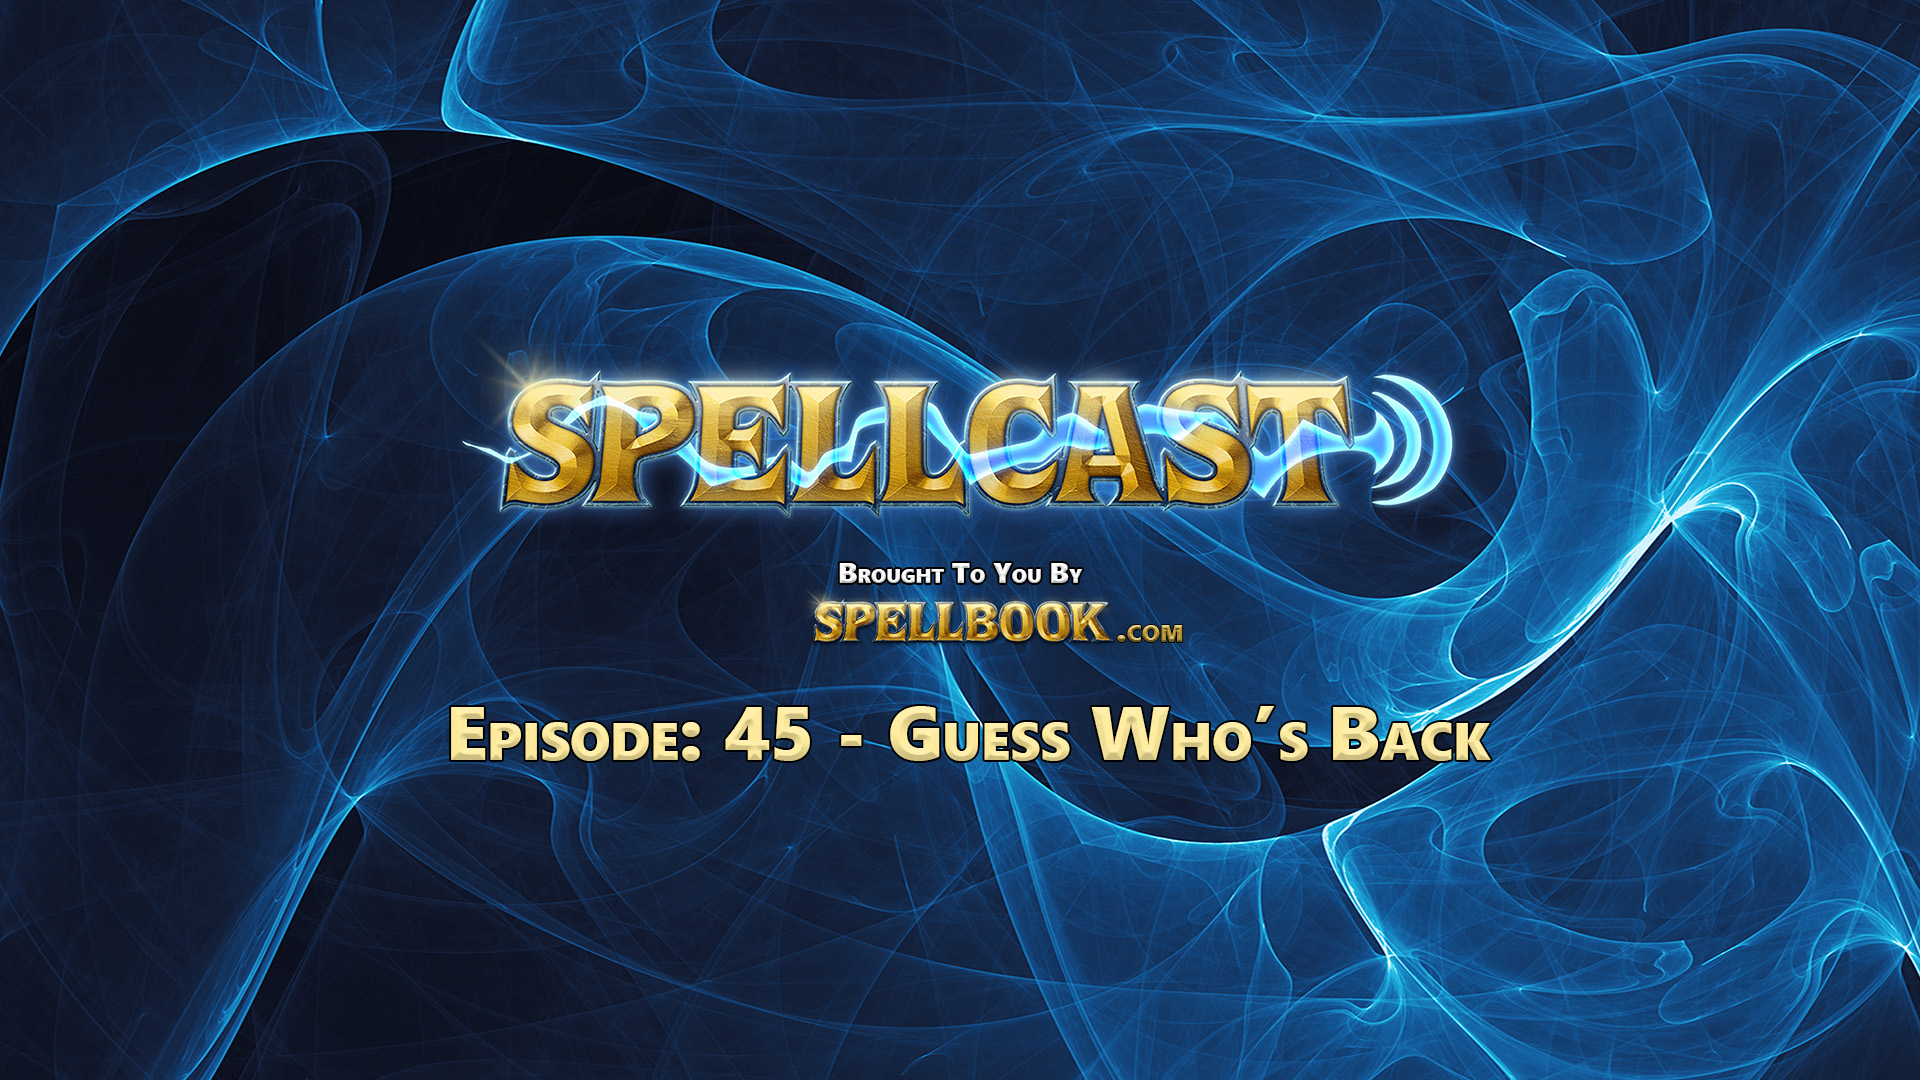 Spellcast Episode : 45 - Guess Who's Back